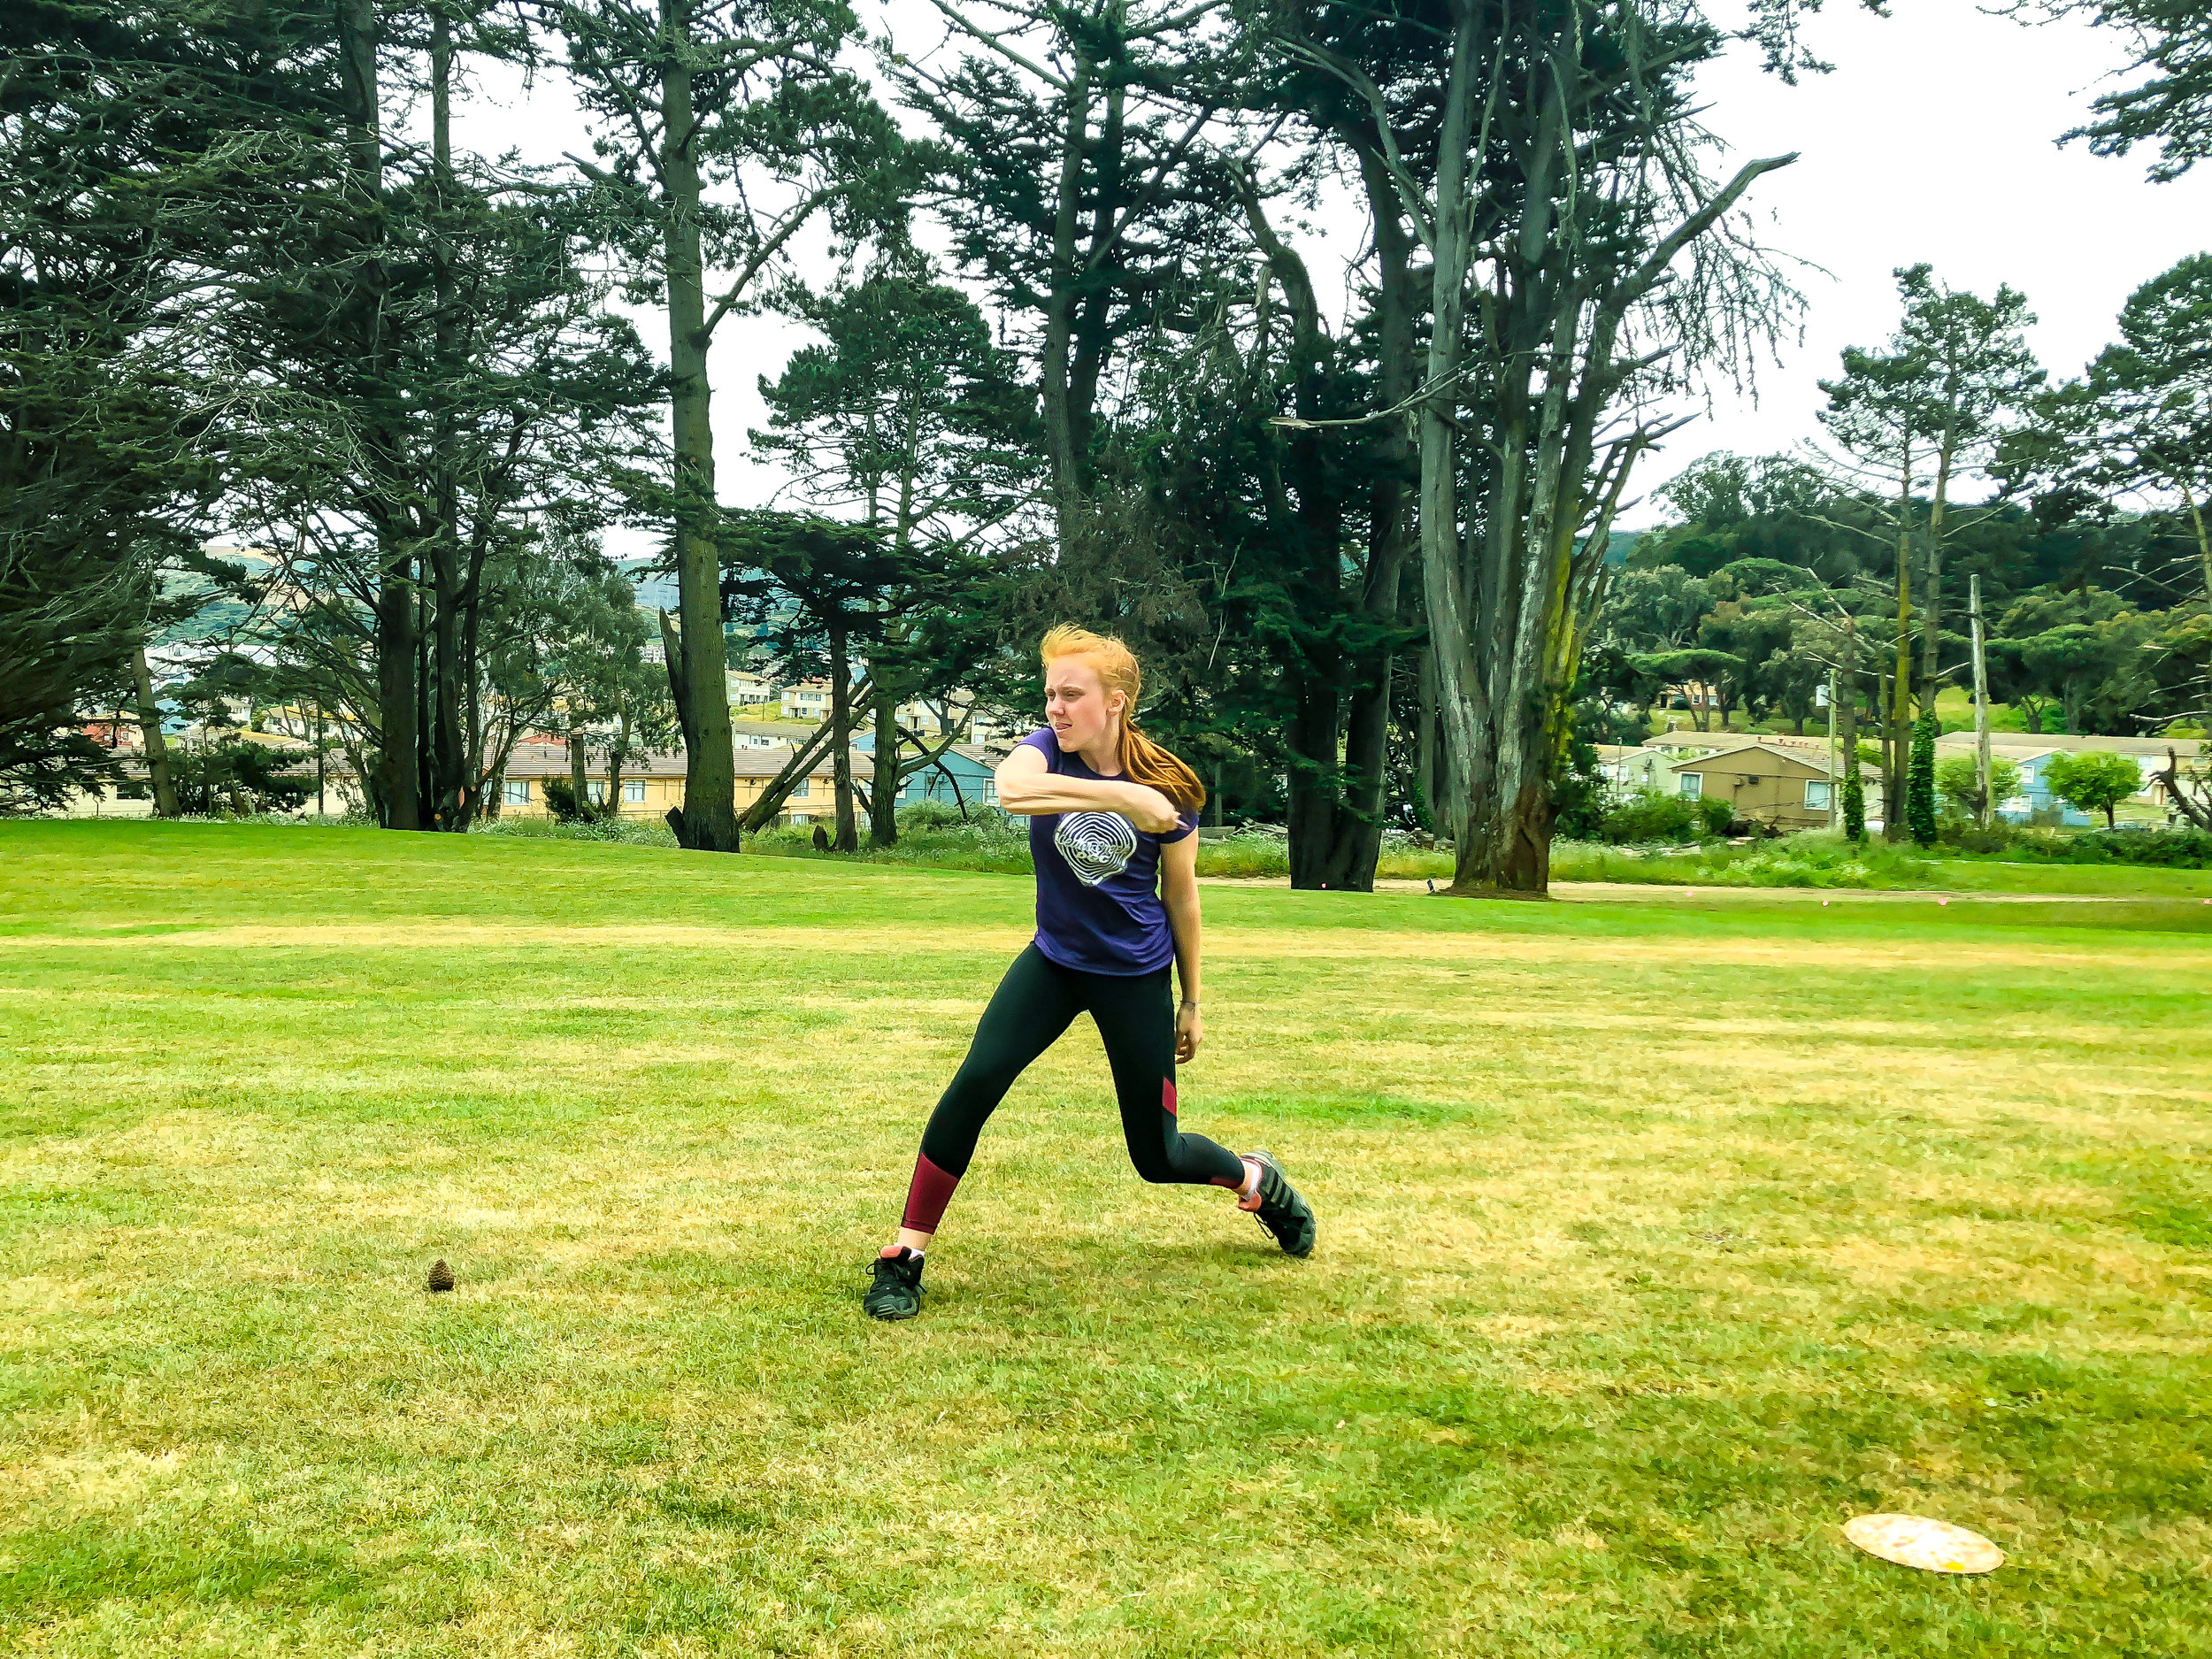 Edie rips a fairway drive at Gleneagles Hole 10, one of a few Par 5's at the inaugural San Francisco Open.